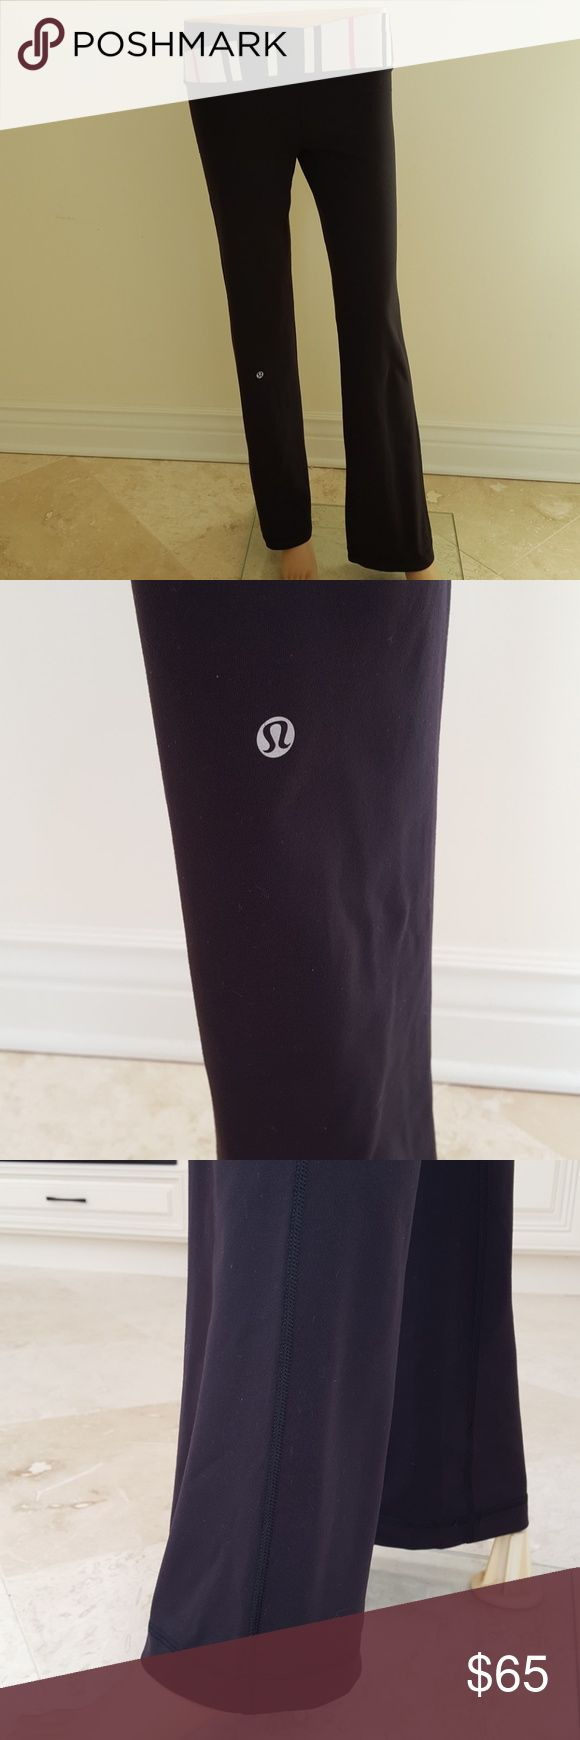 Lululemon pants 💥FREE SHIPPING💥 Lululemon active wear Gently Used  Free shipping! Take advantage of free shipping for other items in my closet by bundling with this listing! Please let me know before you purchase or bundle so I can apply the discount for shipping to this listing. 💥PRICE FIRM💥 lululemon athletica Pants Track Pants & Joggers